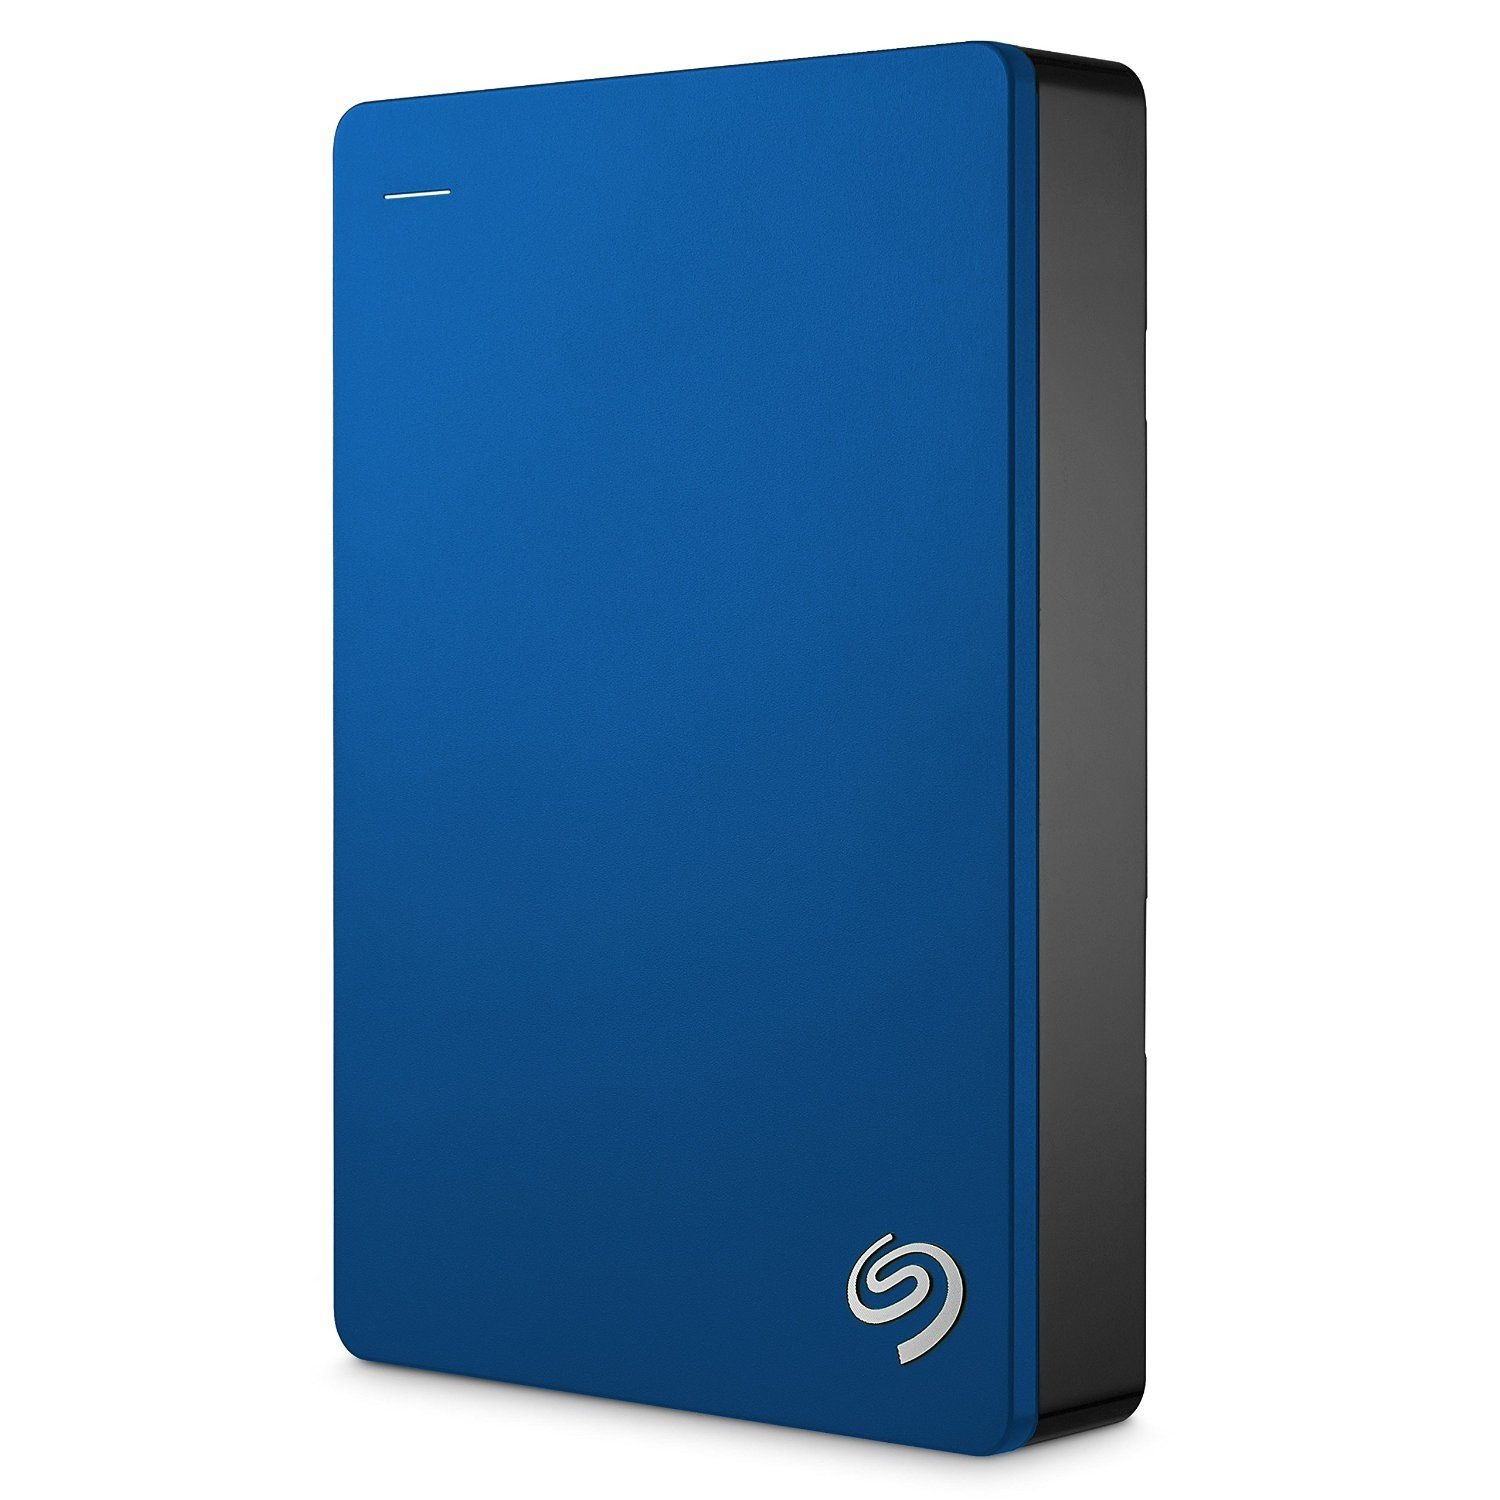 The Seagate Backup Plus portable drive offers the mobility